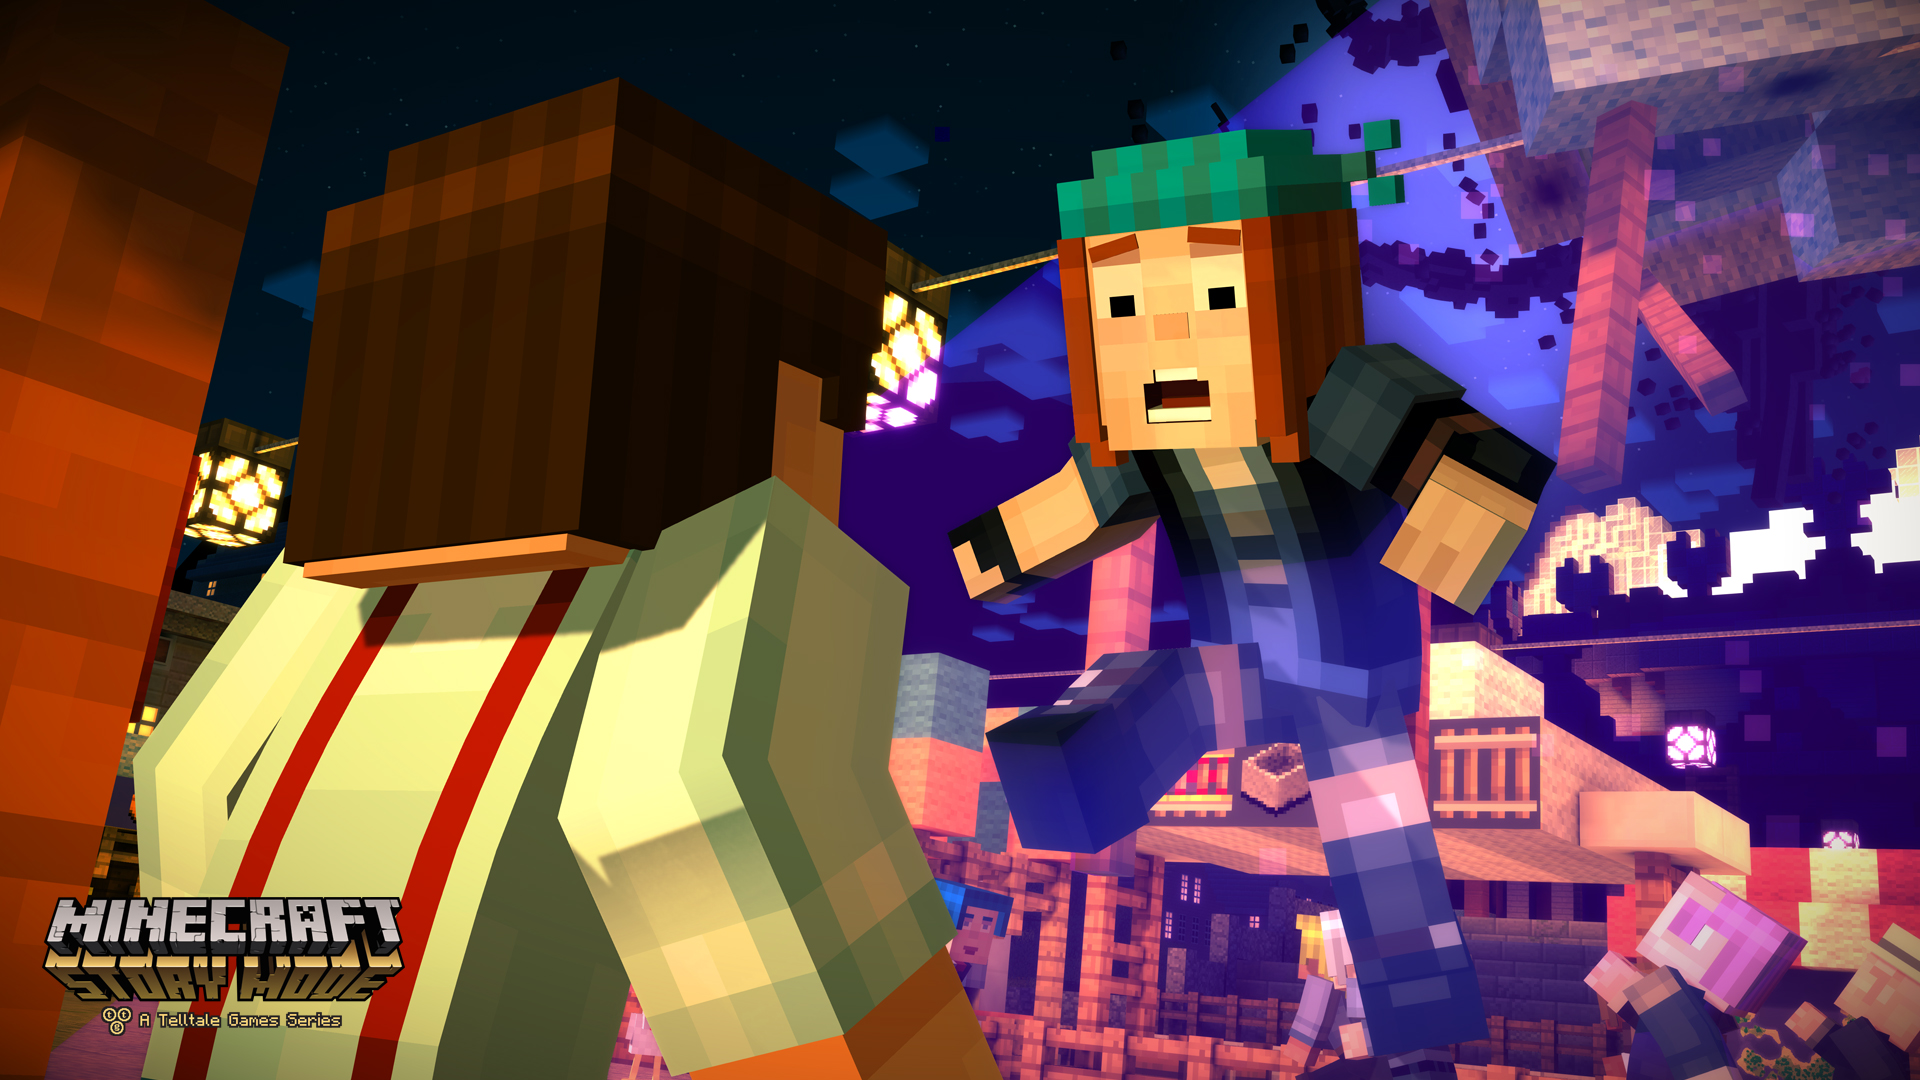 Minecraft Story Mode Series 2 Episode 2 arrives this month